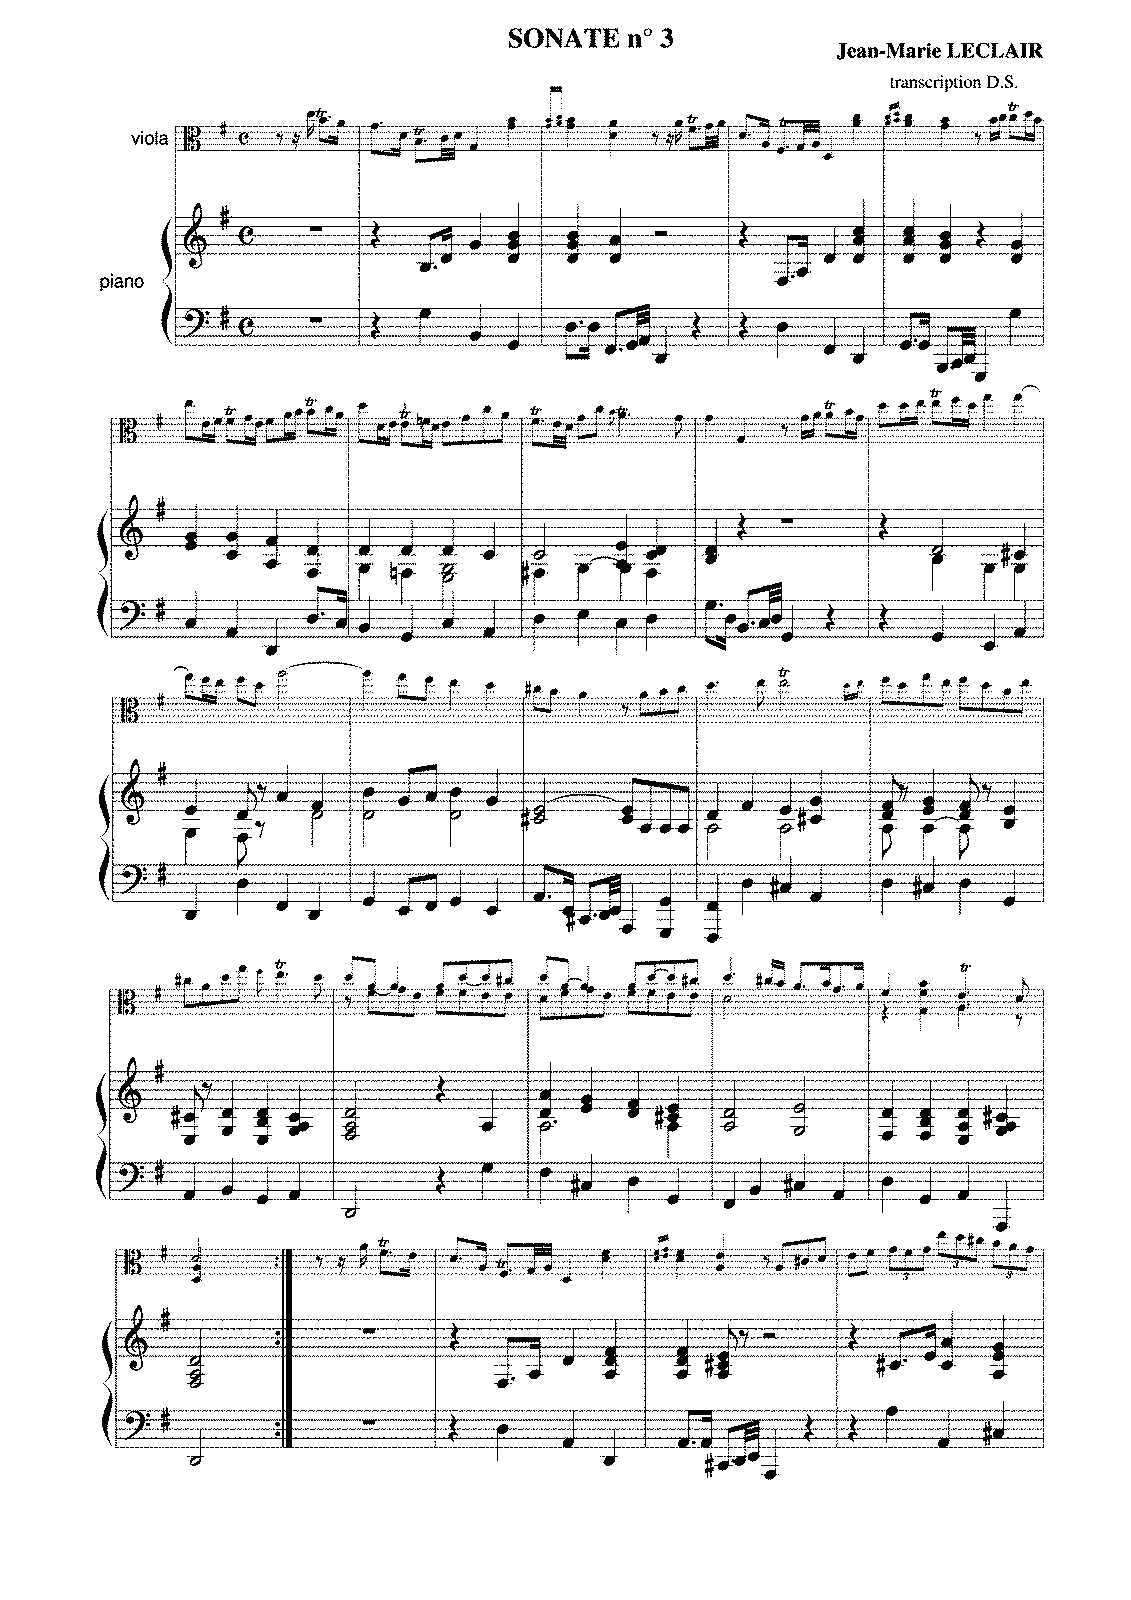 PMLP62766-Leclair alto & piano 1.pdf